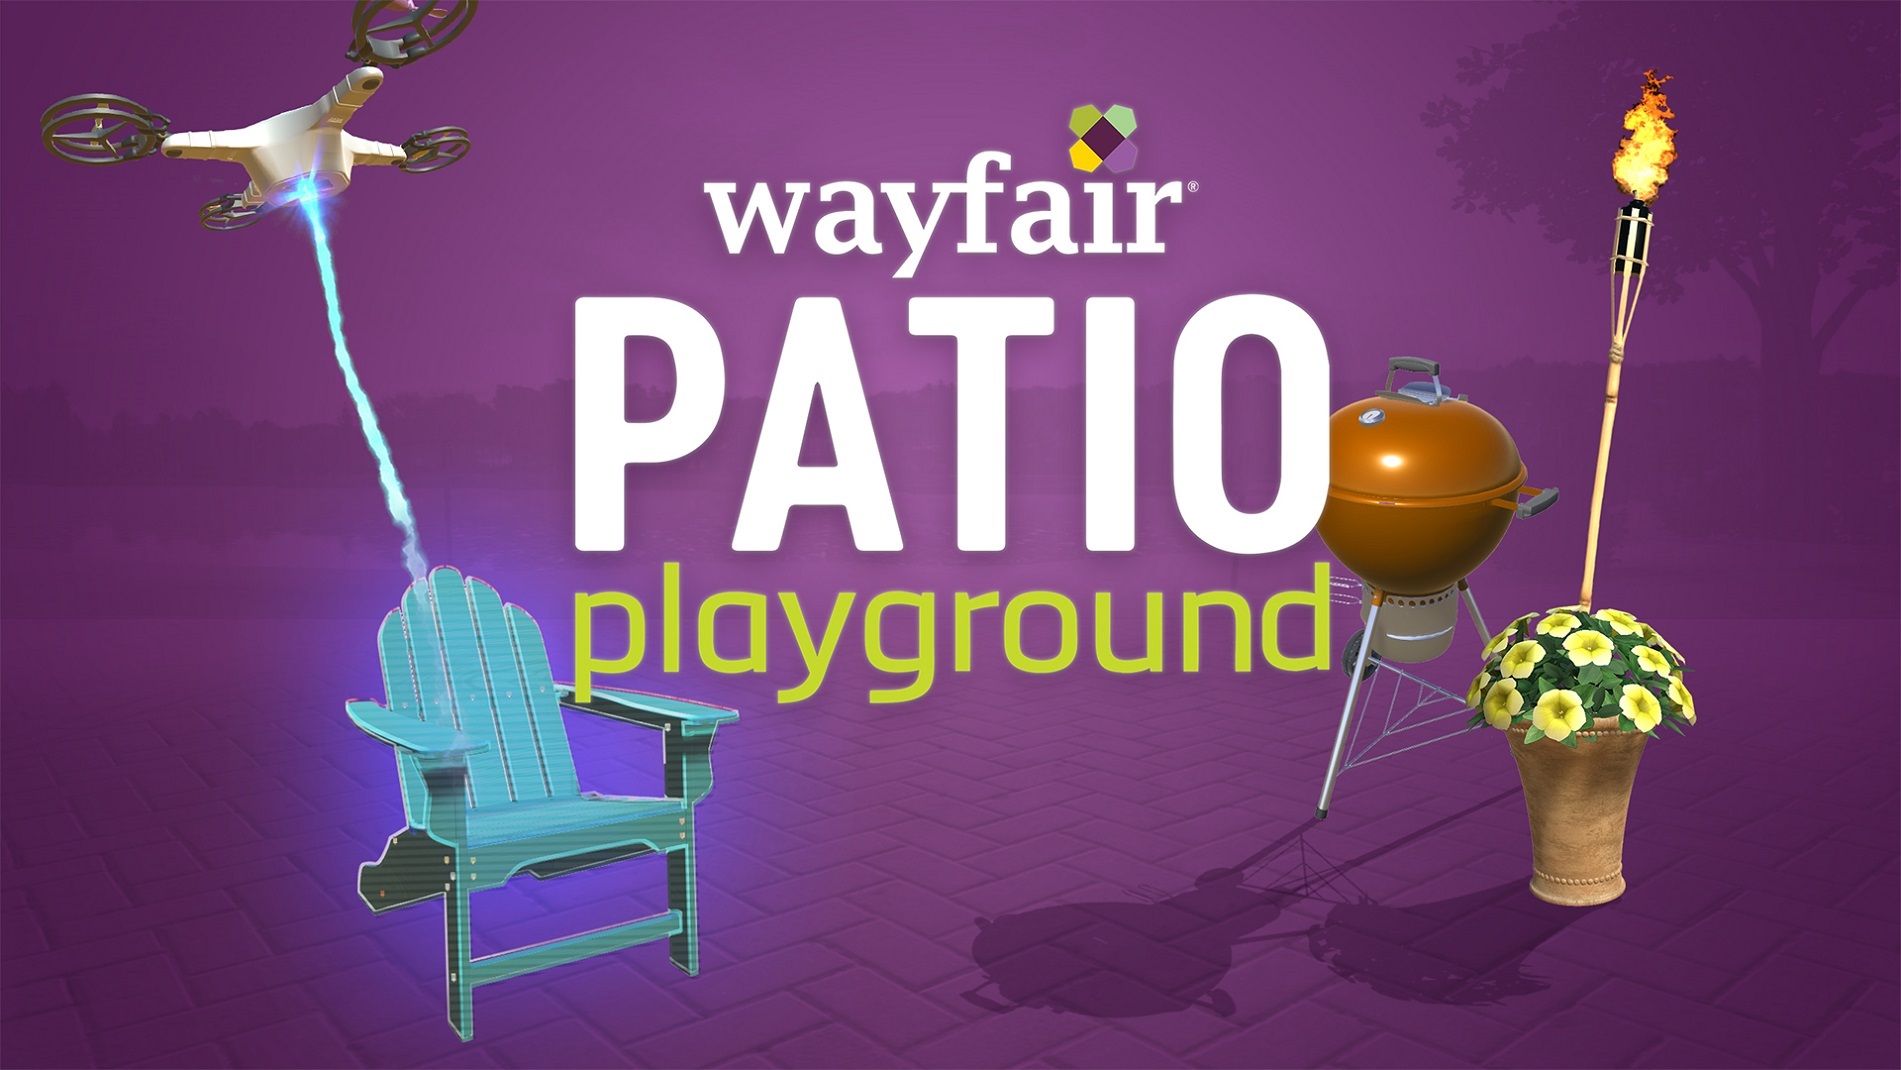 wayfair patio playground